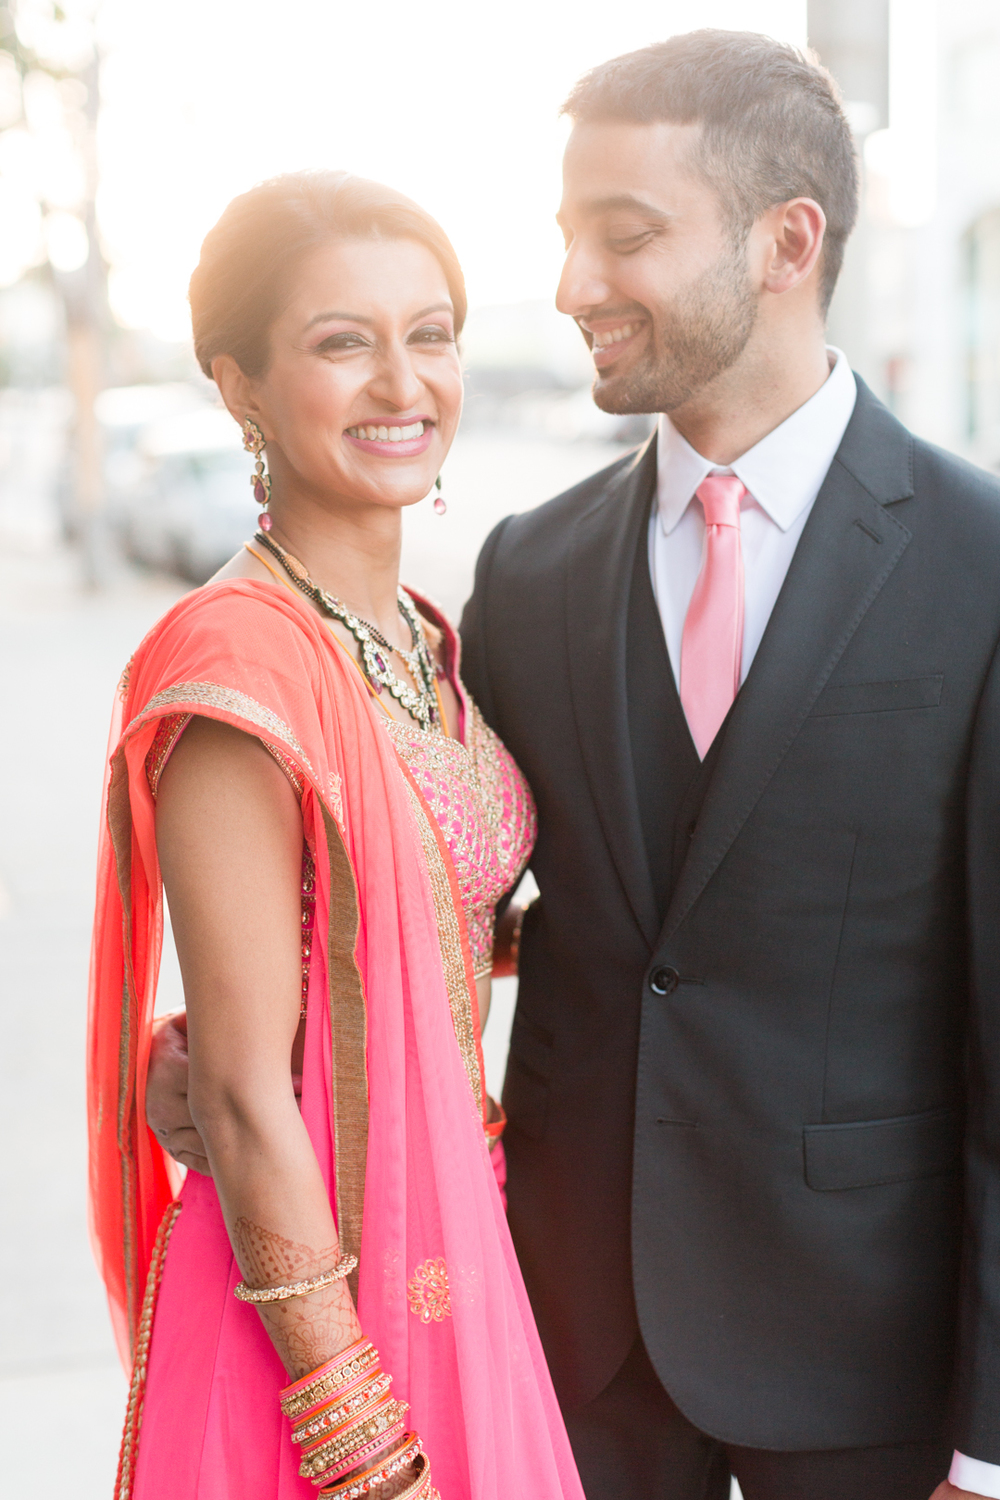 CourtneyPaige_WeddingPhotography_Nagjee-107.jpg